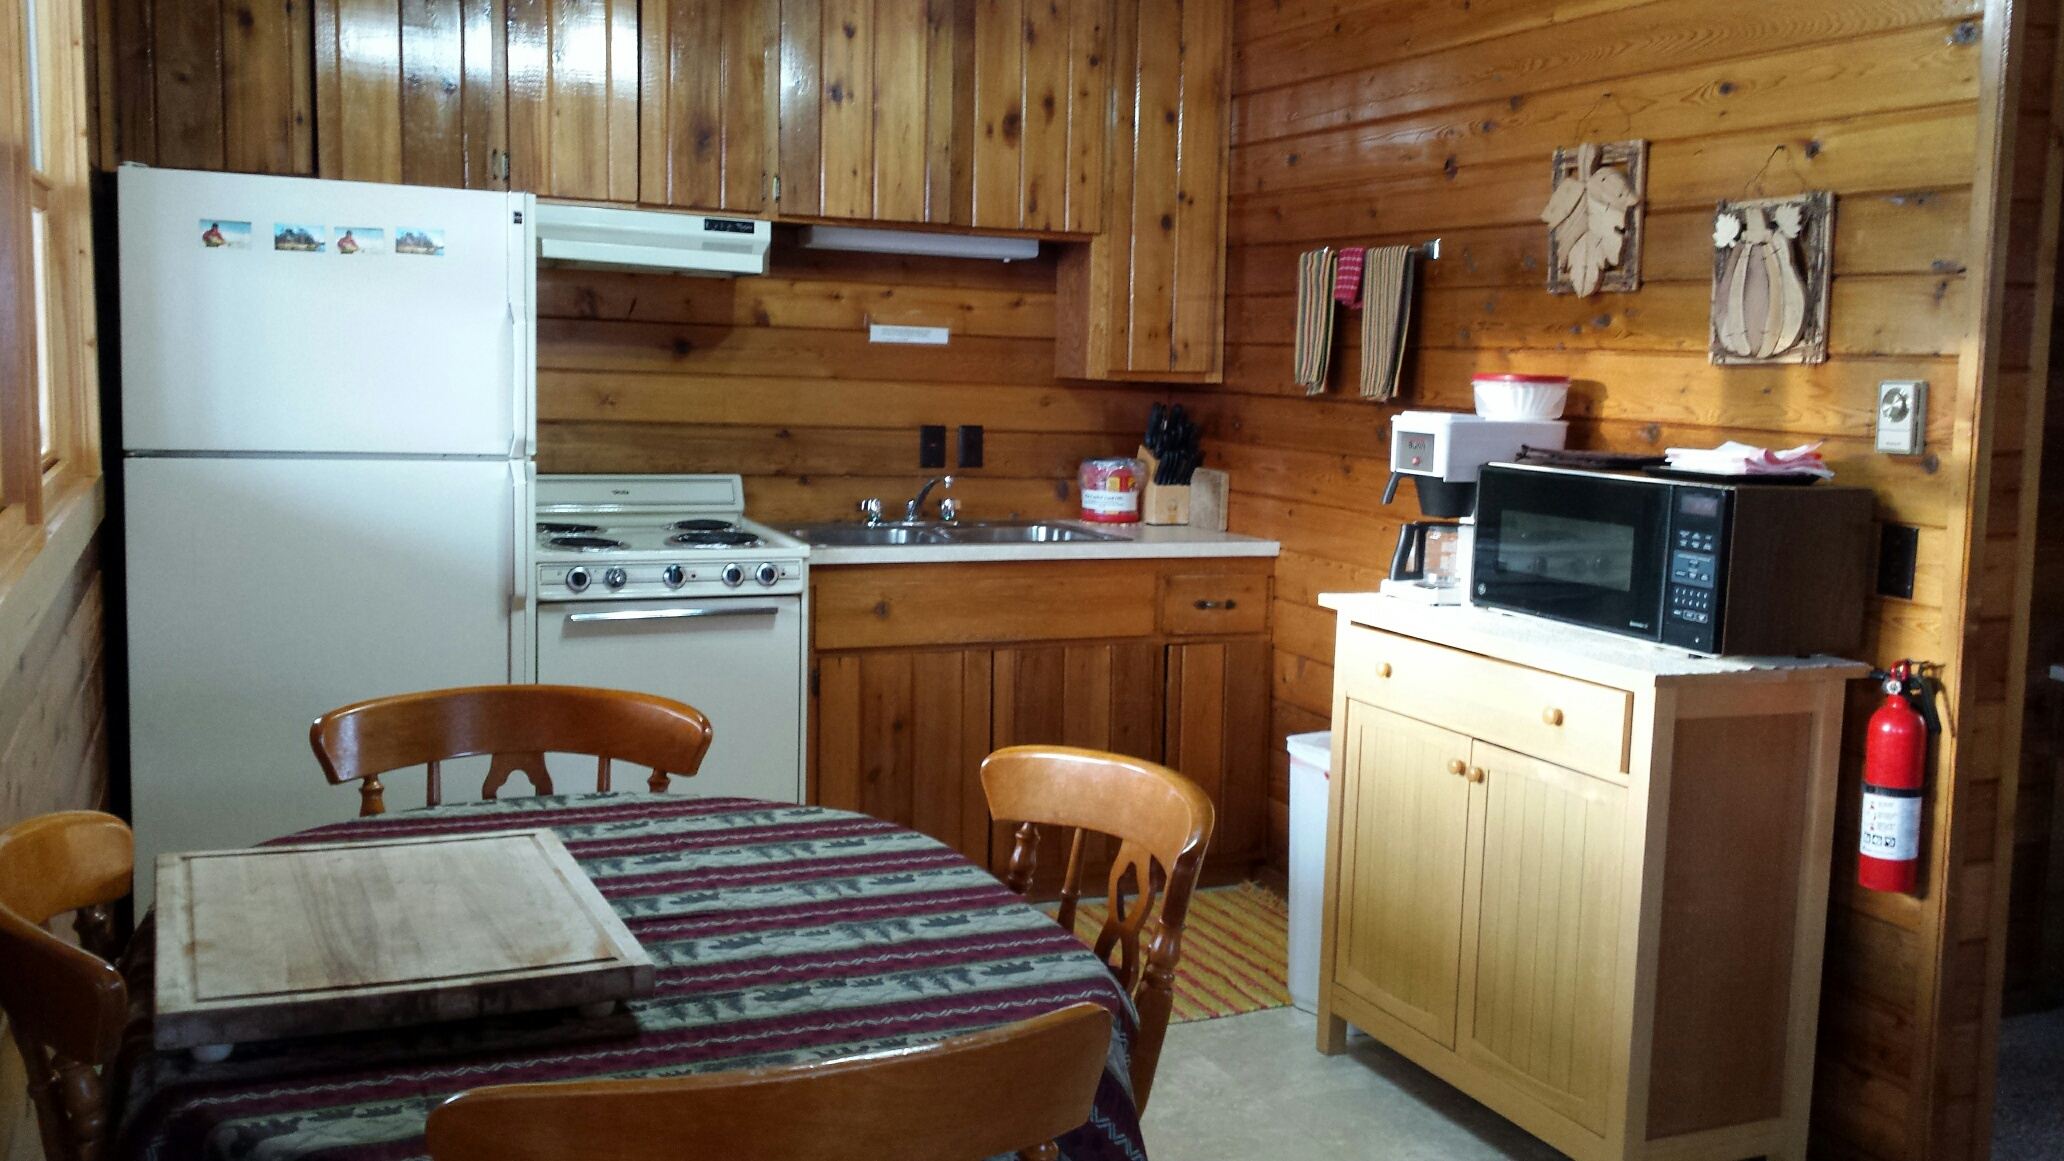 rent rentals resort for rental pet mn friendly minnesota orr in pelican lake cabin cabins